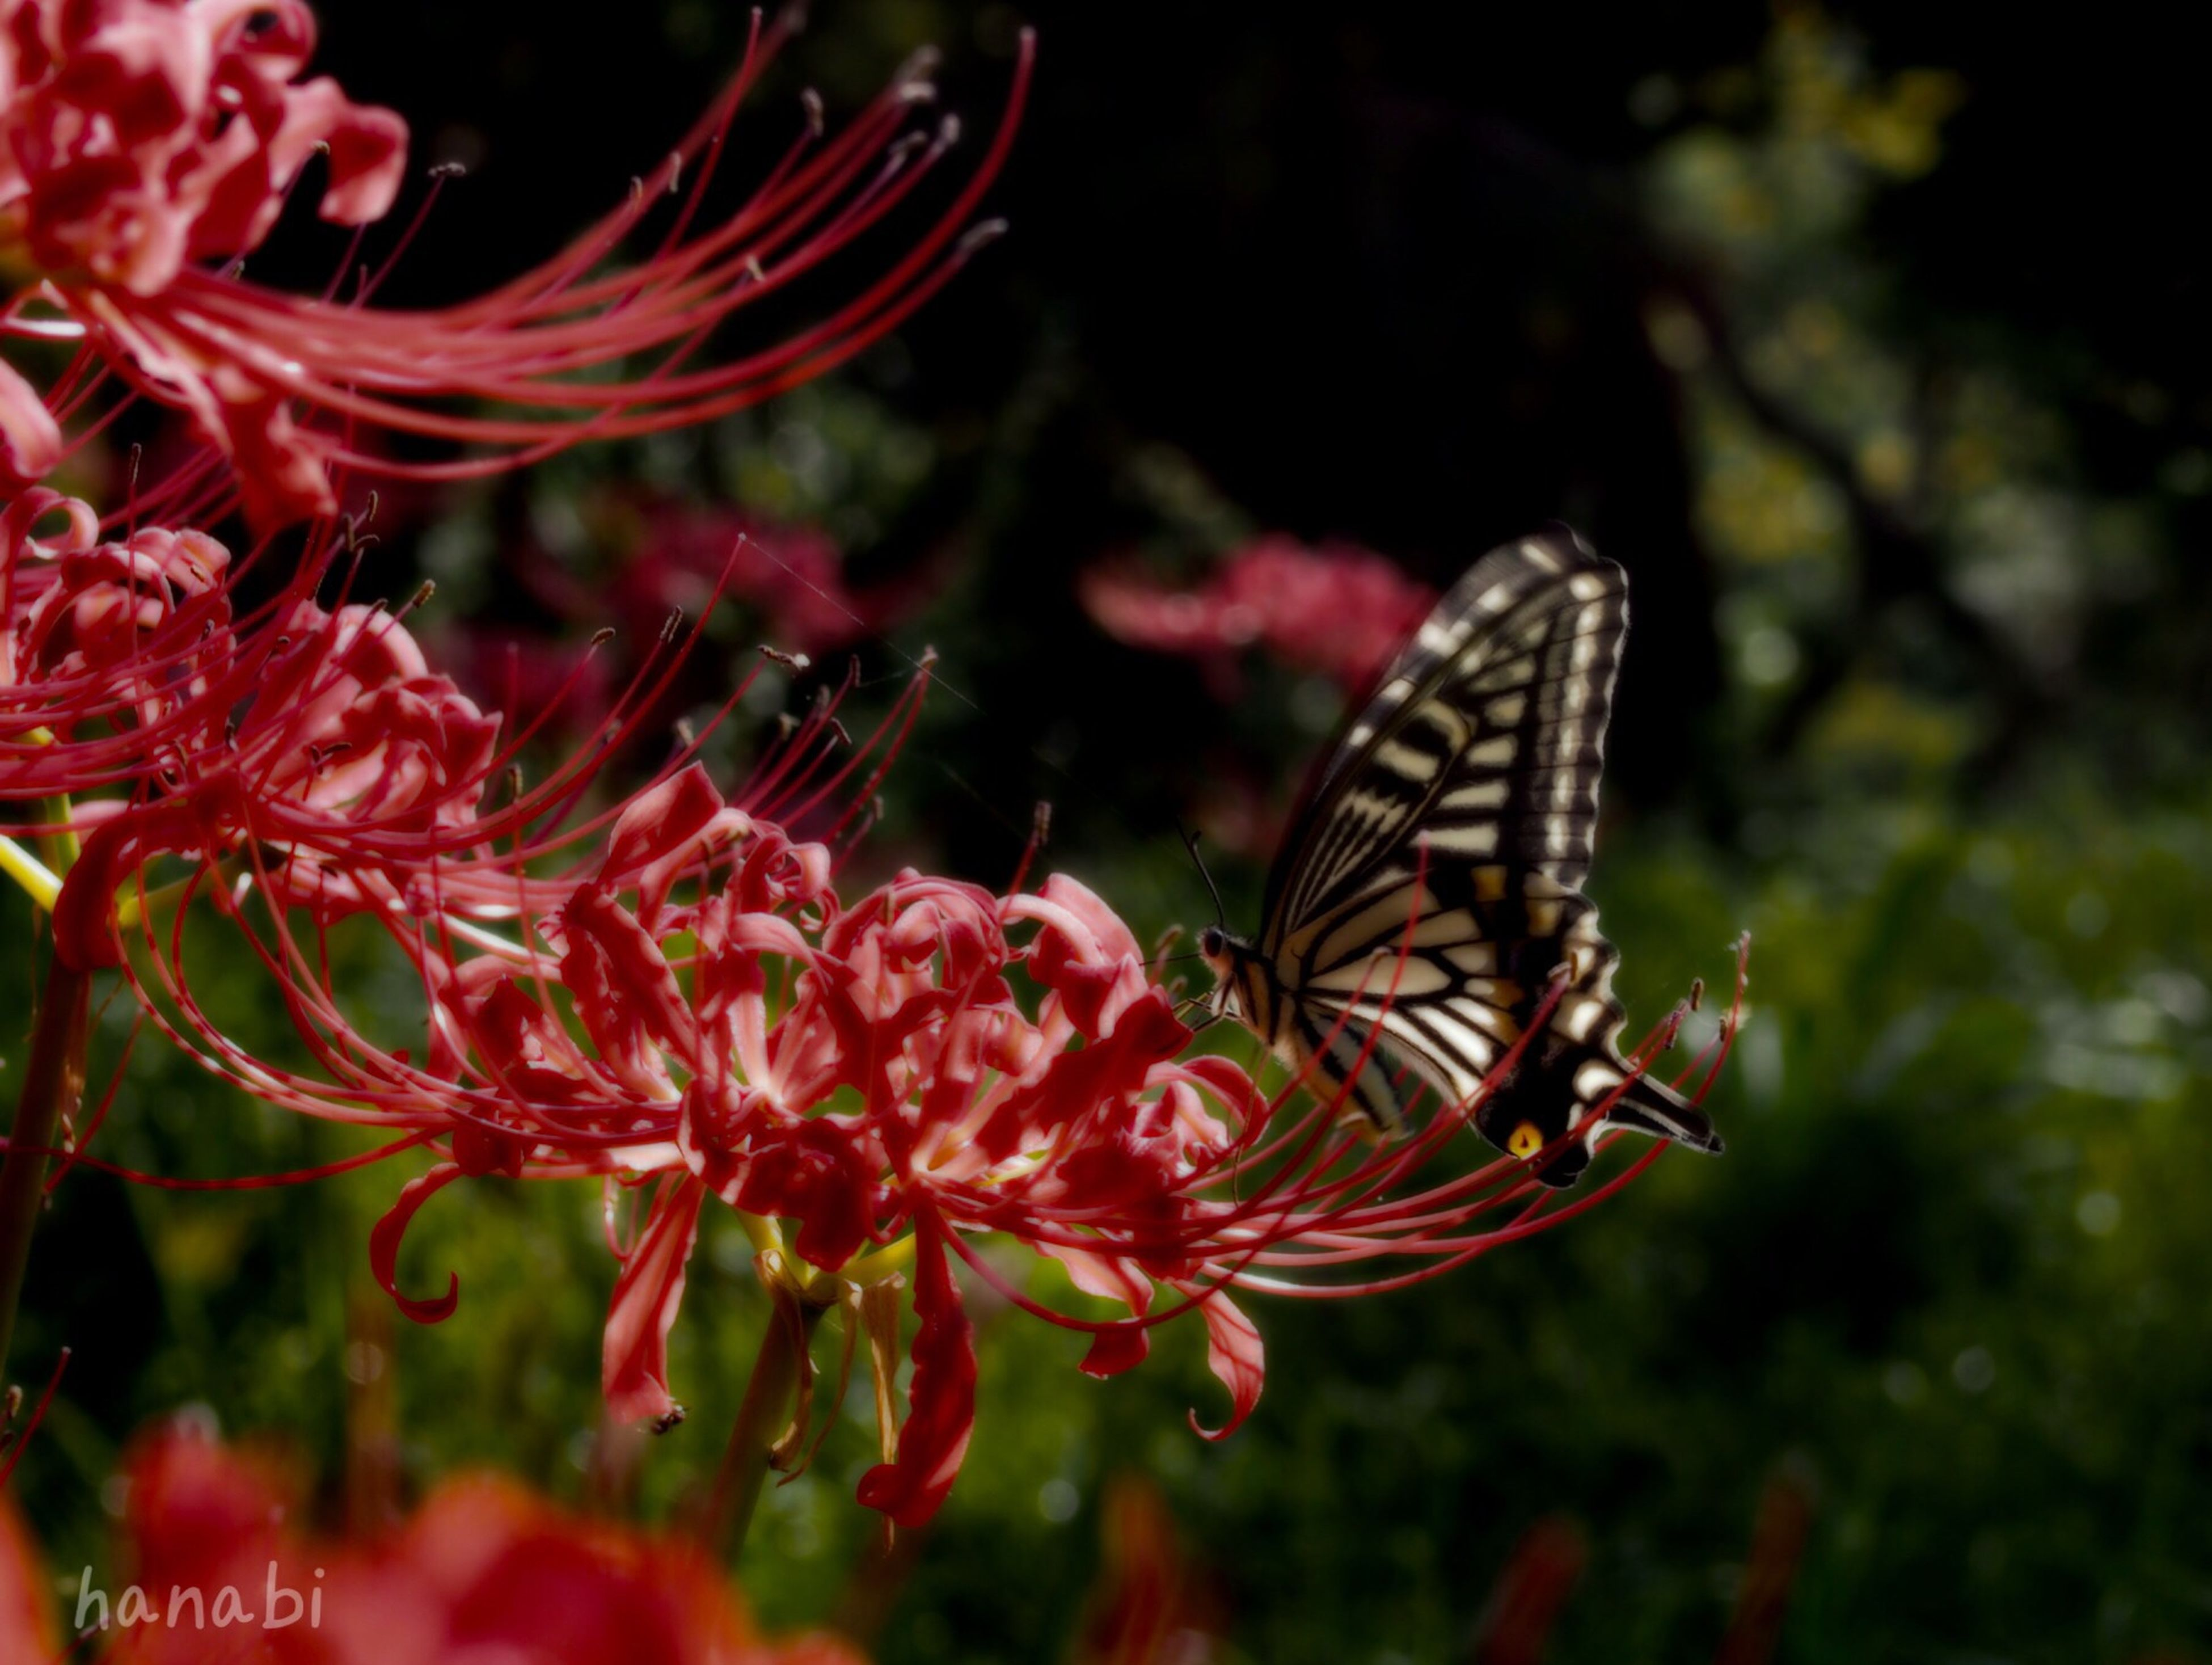 one animal, insect, animals in the wild, animal themes, flower, wildlife, butterfly - insect, butterfly, fragility, focus on foreground, close-up, beauty in nature, pollination, petal, nature, freshness, plant, growth, animal markings, animal wing